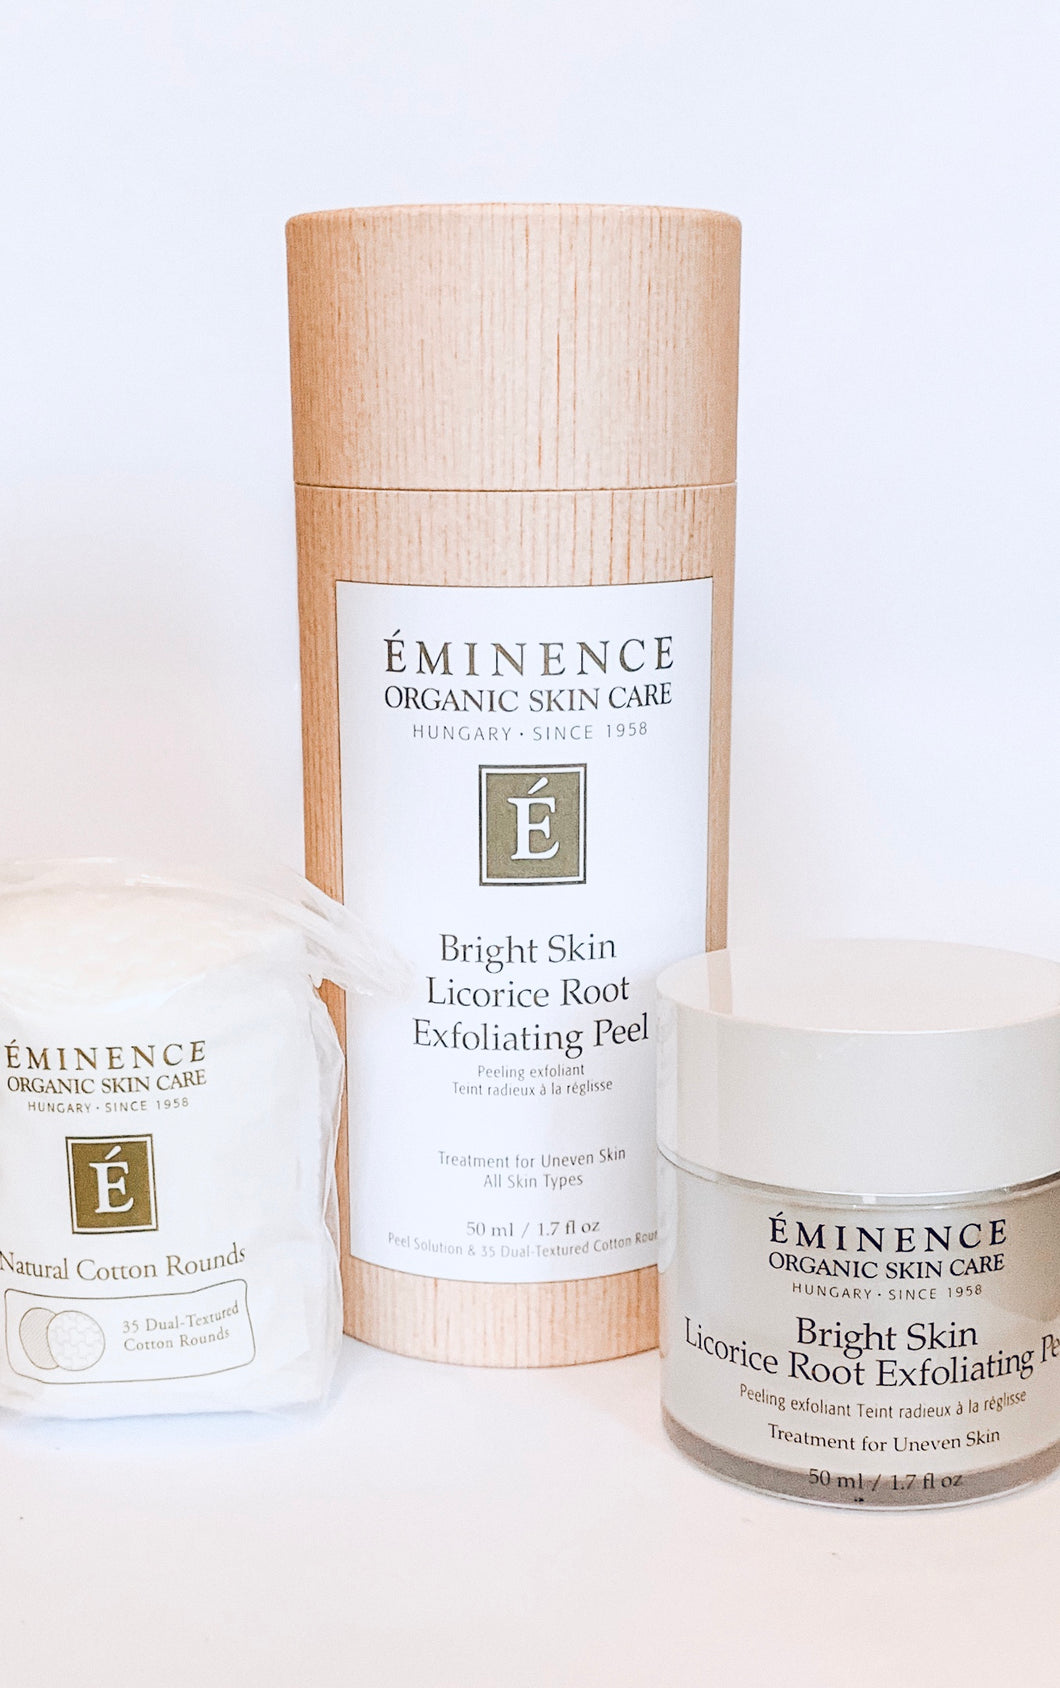 Eminence Bright Skin Licorice Root Exfoliating Peel